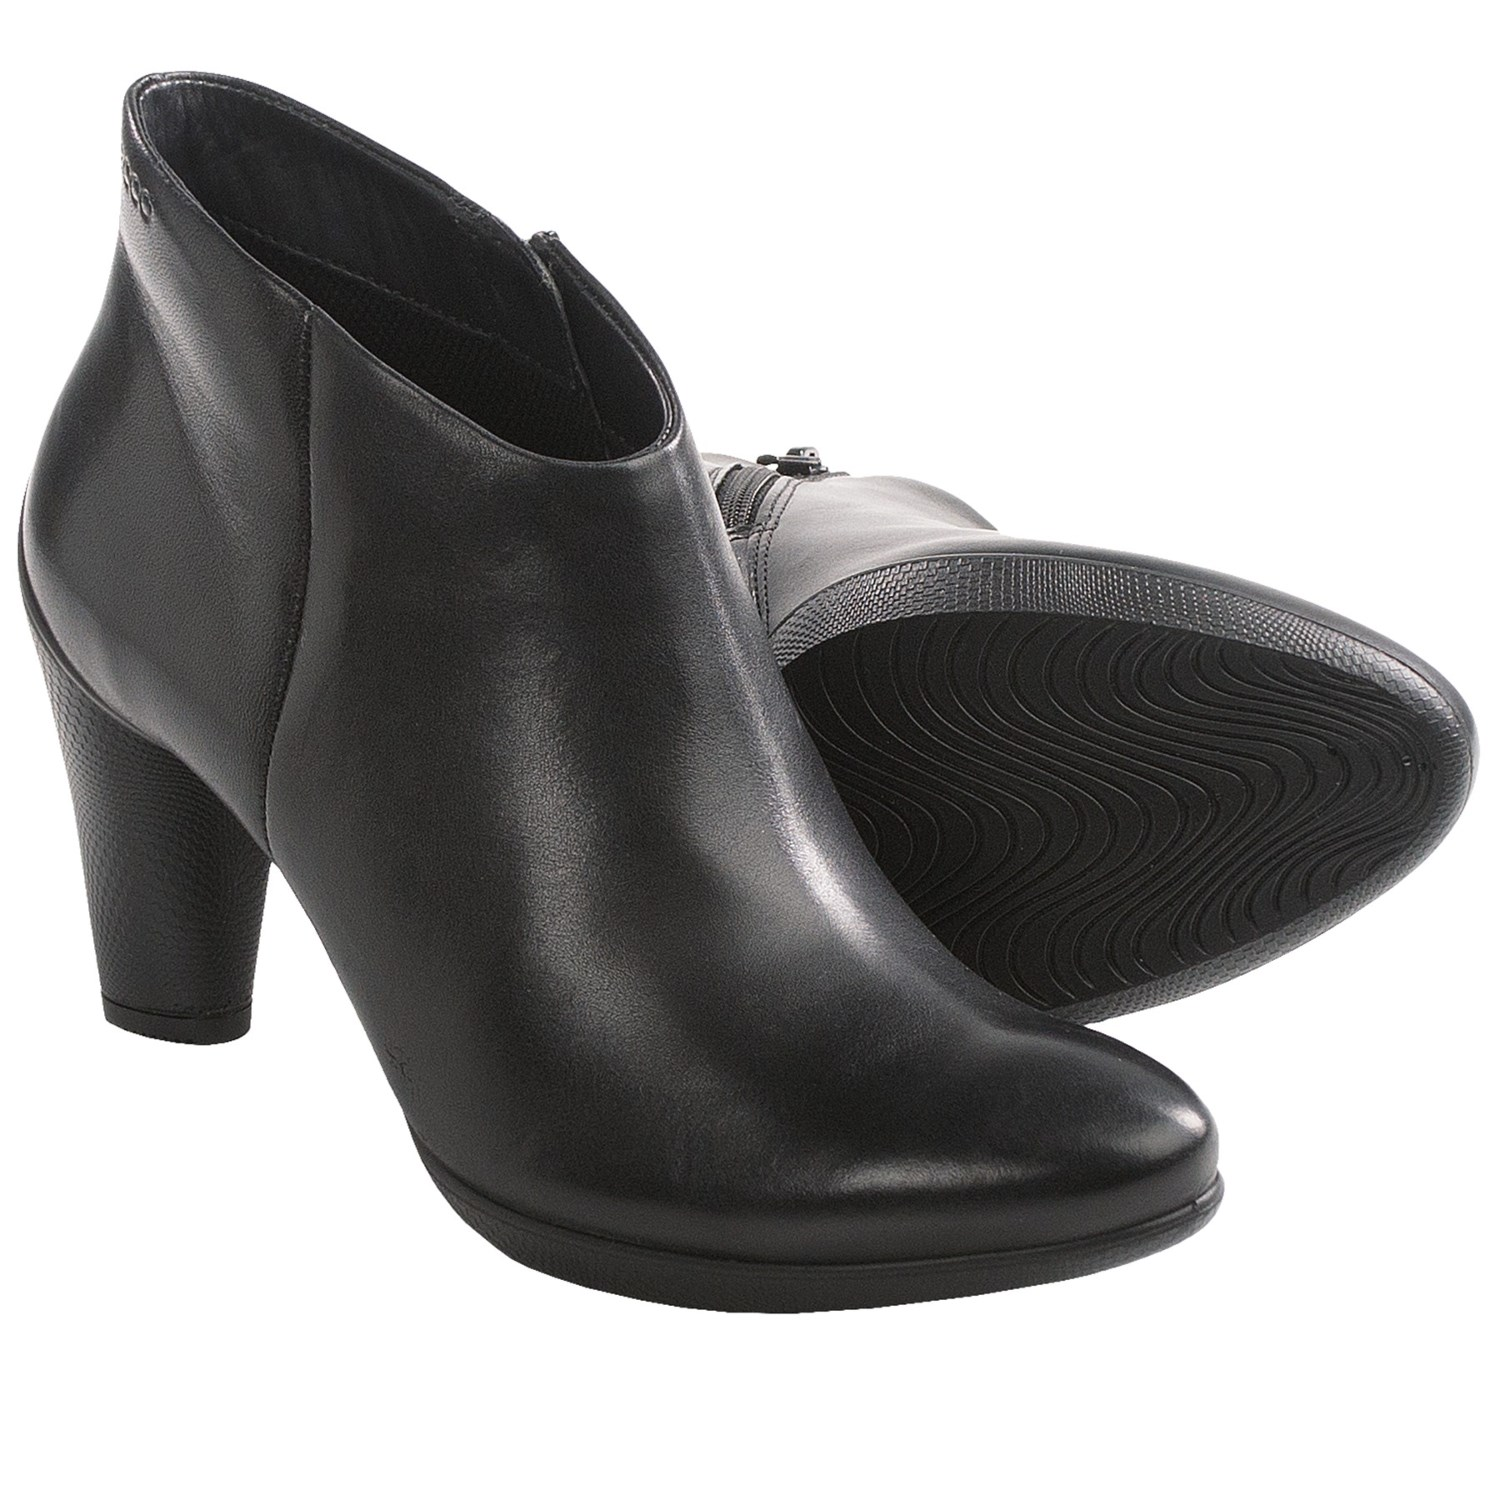 Black Dress Boots For Women